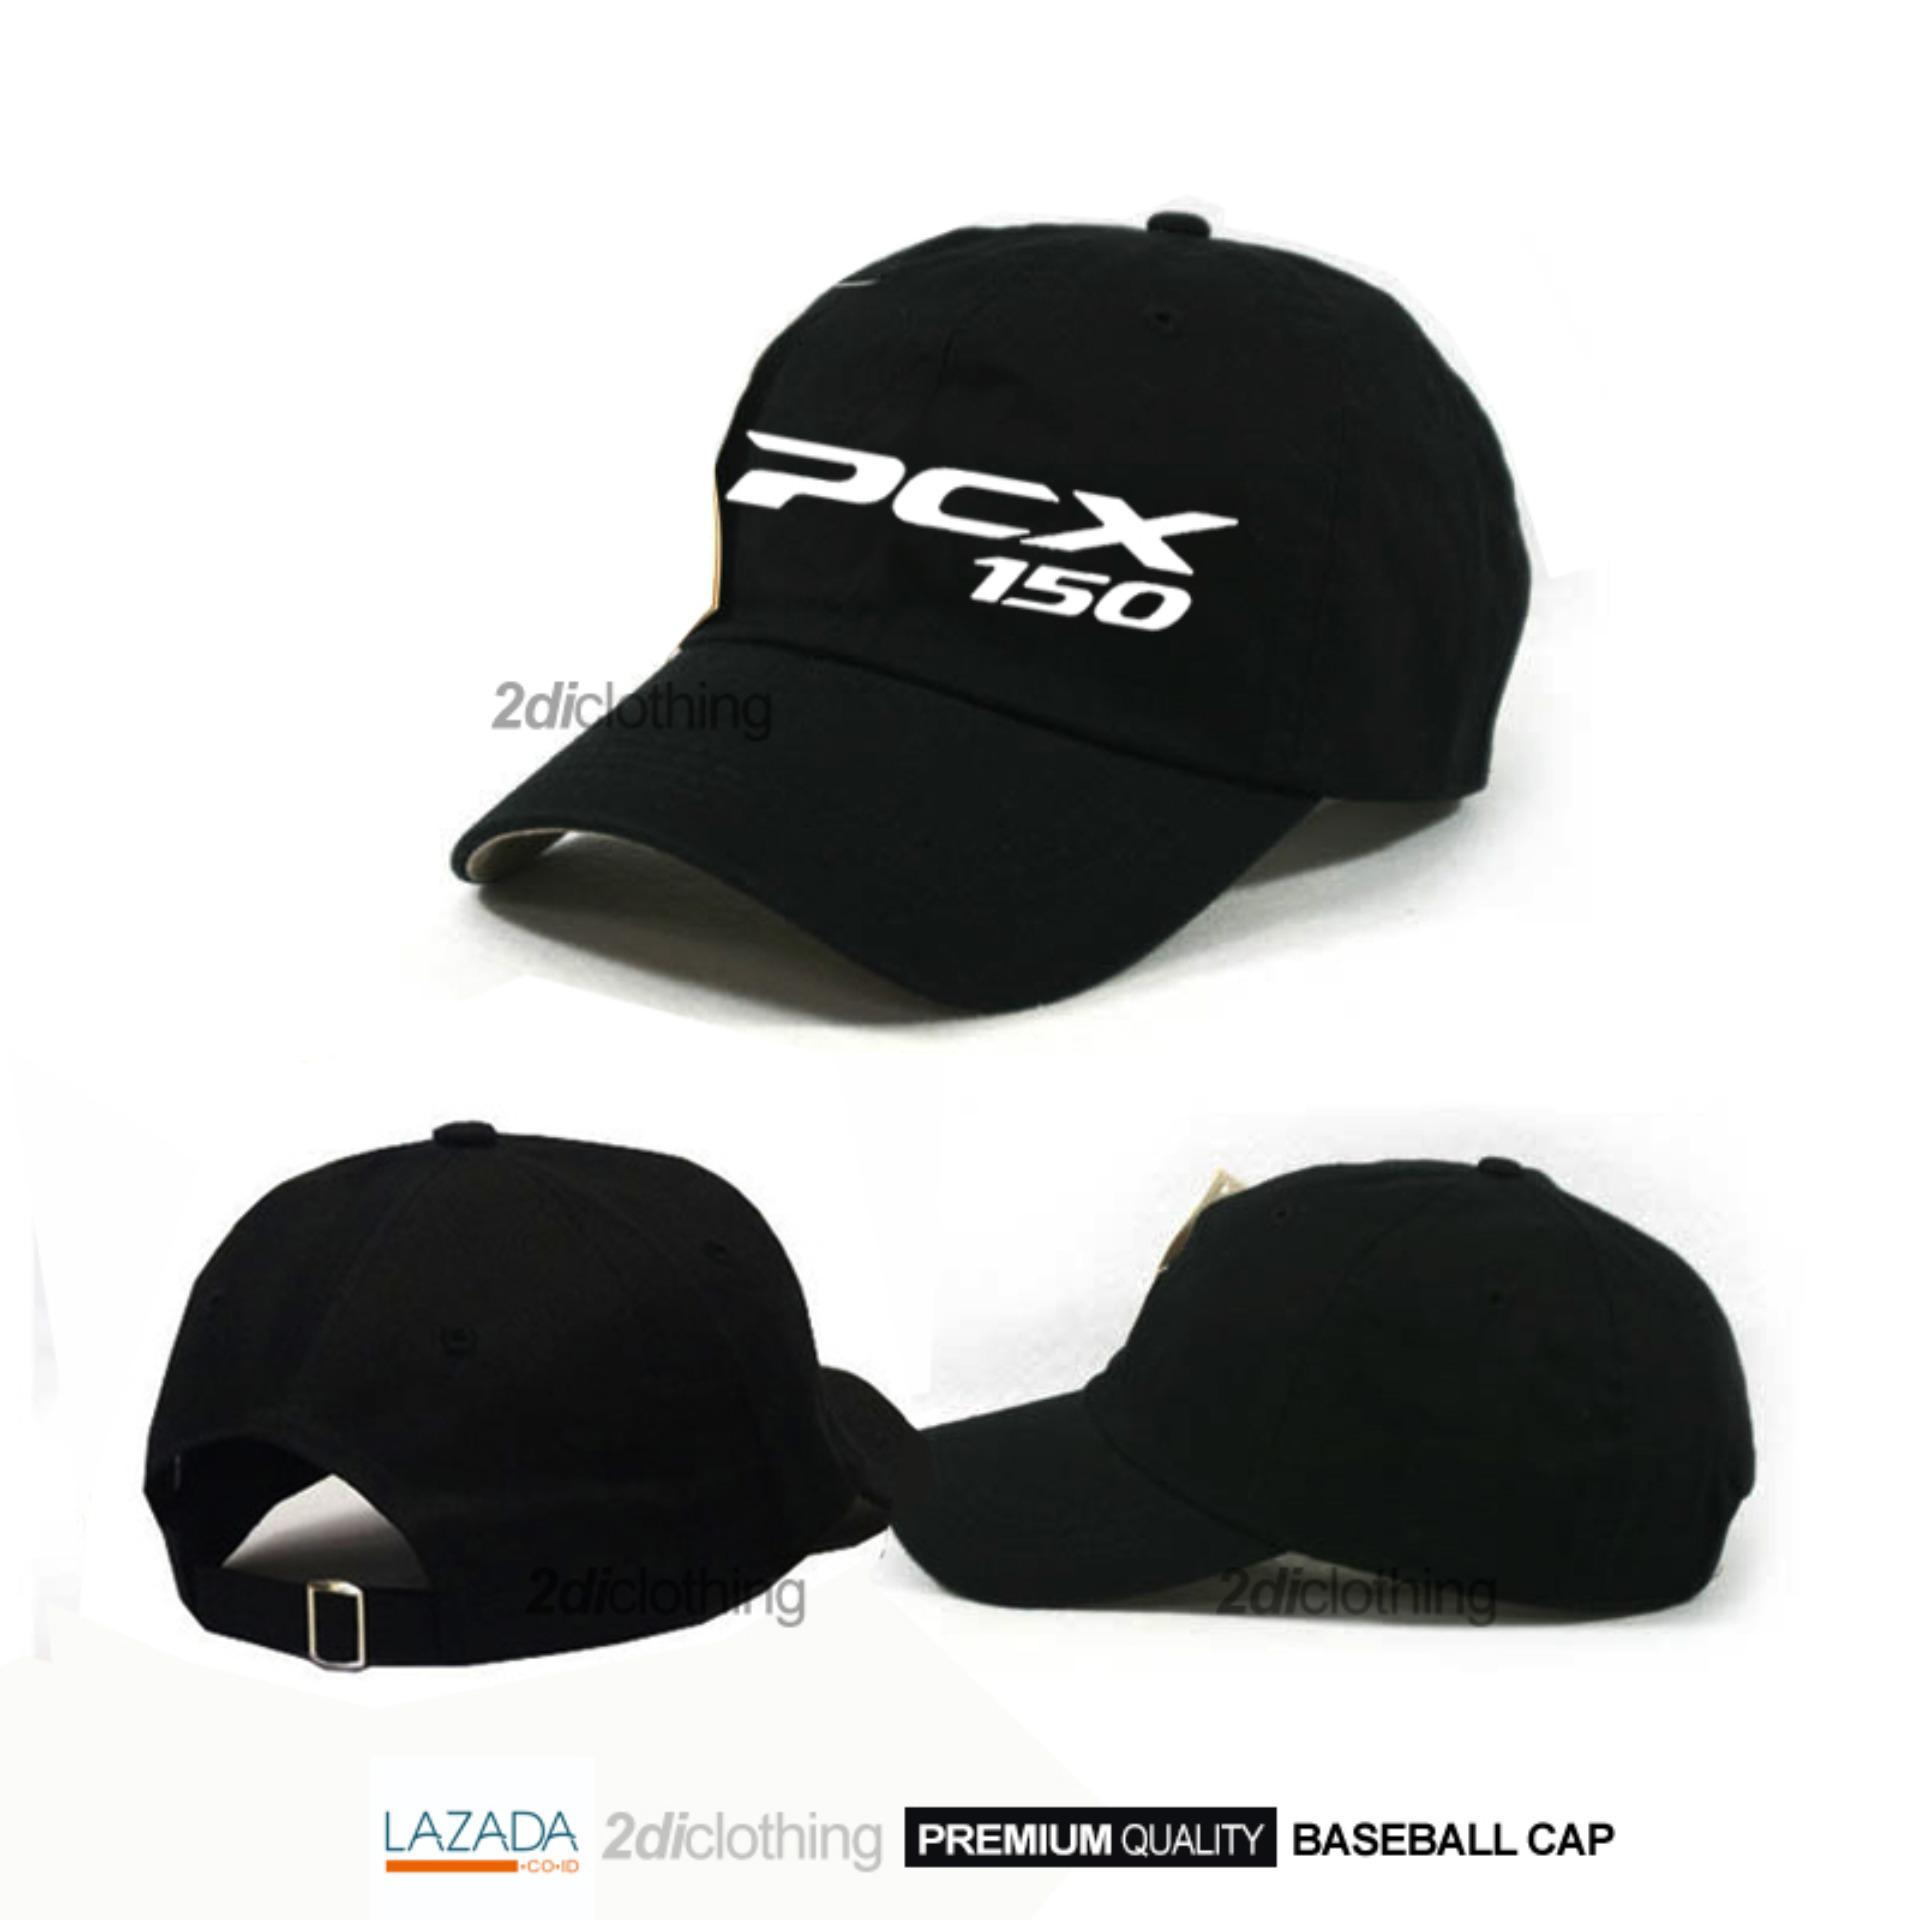 Topi baseball distro PCX black premium